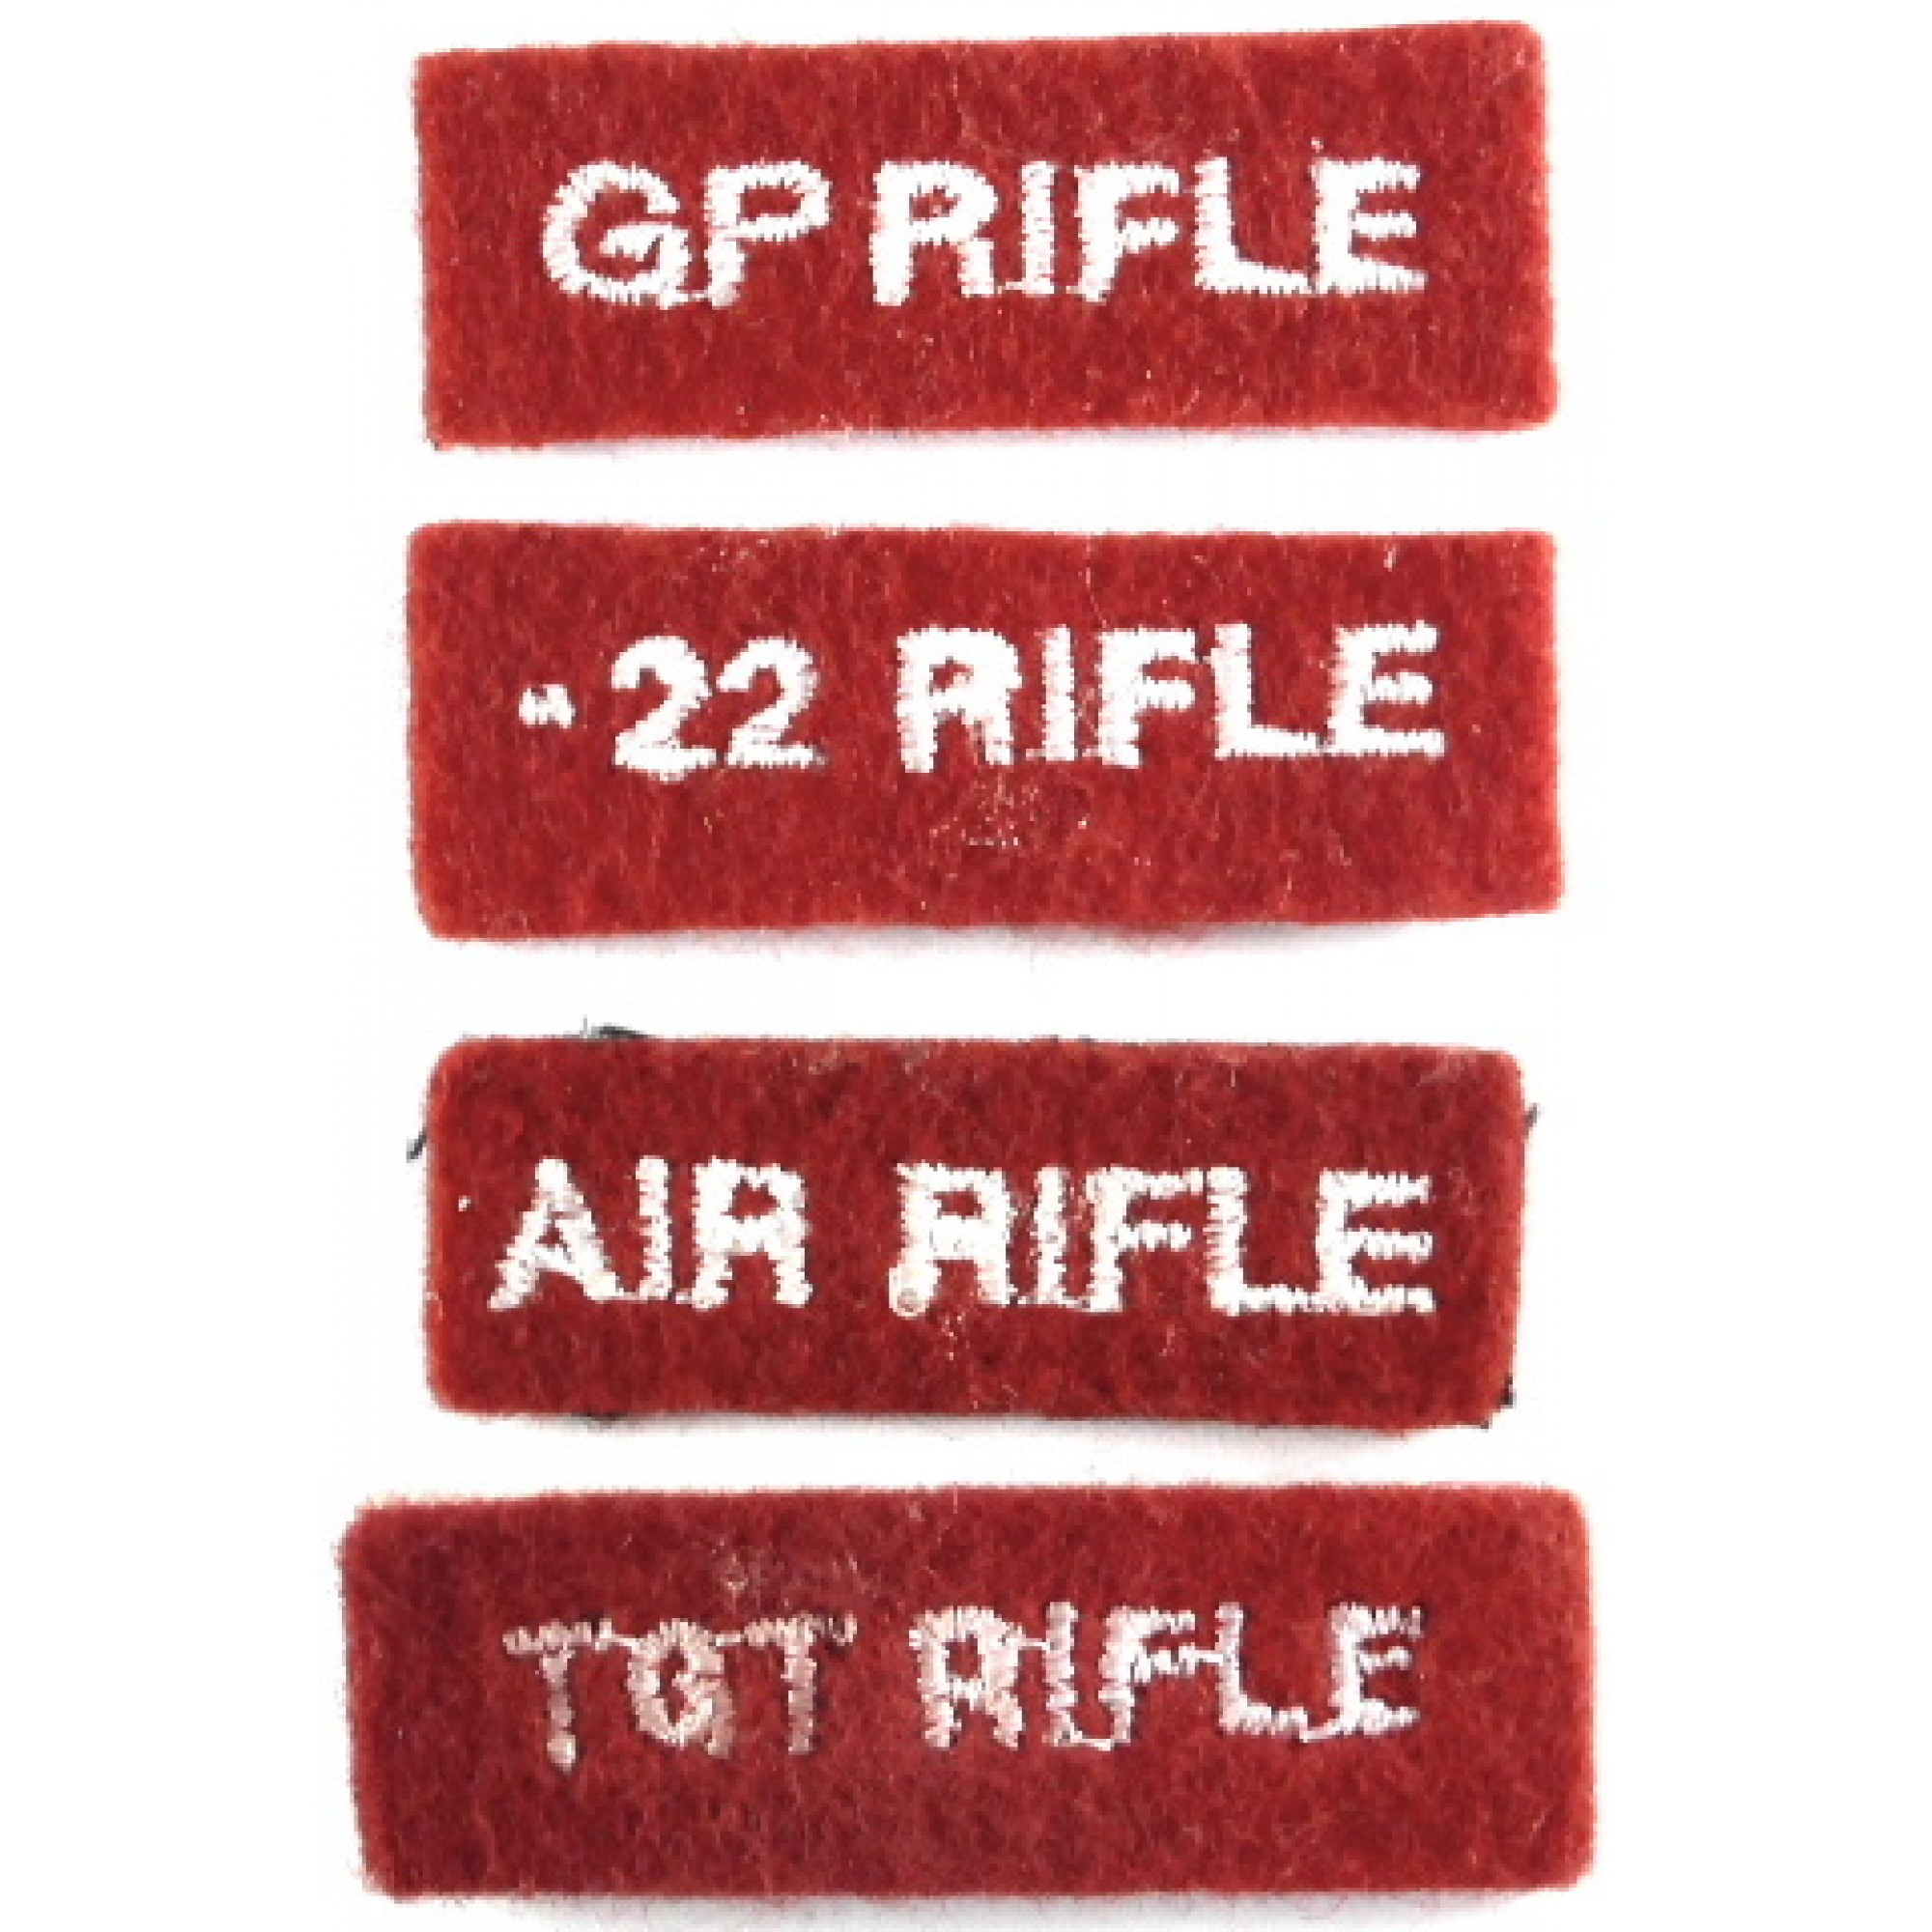 Army Cadet Force Cloth Shooting Qualification Badges | Badges of the